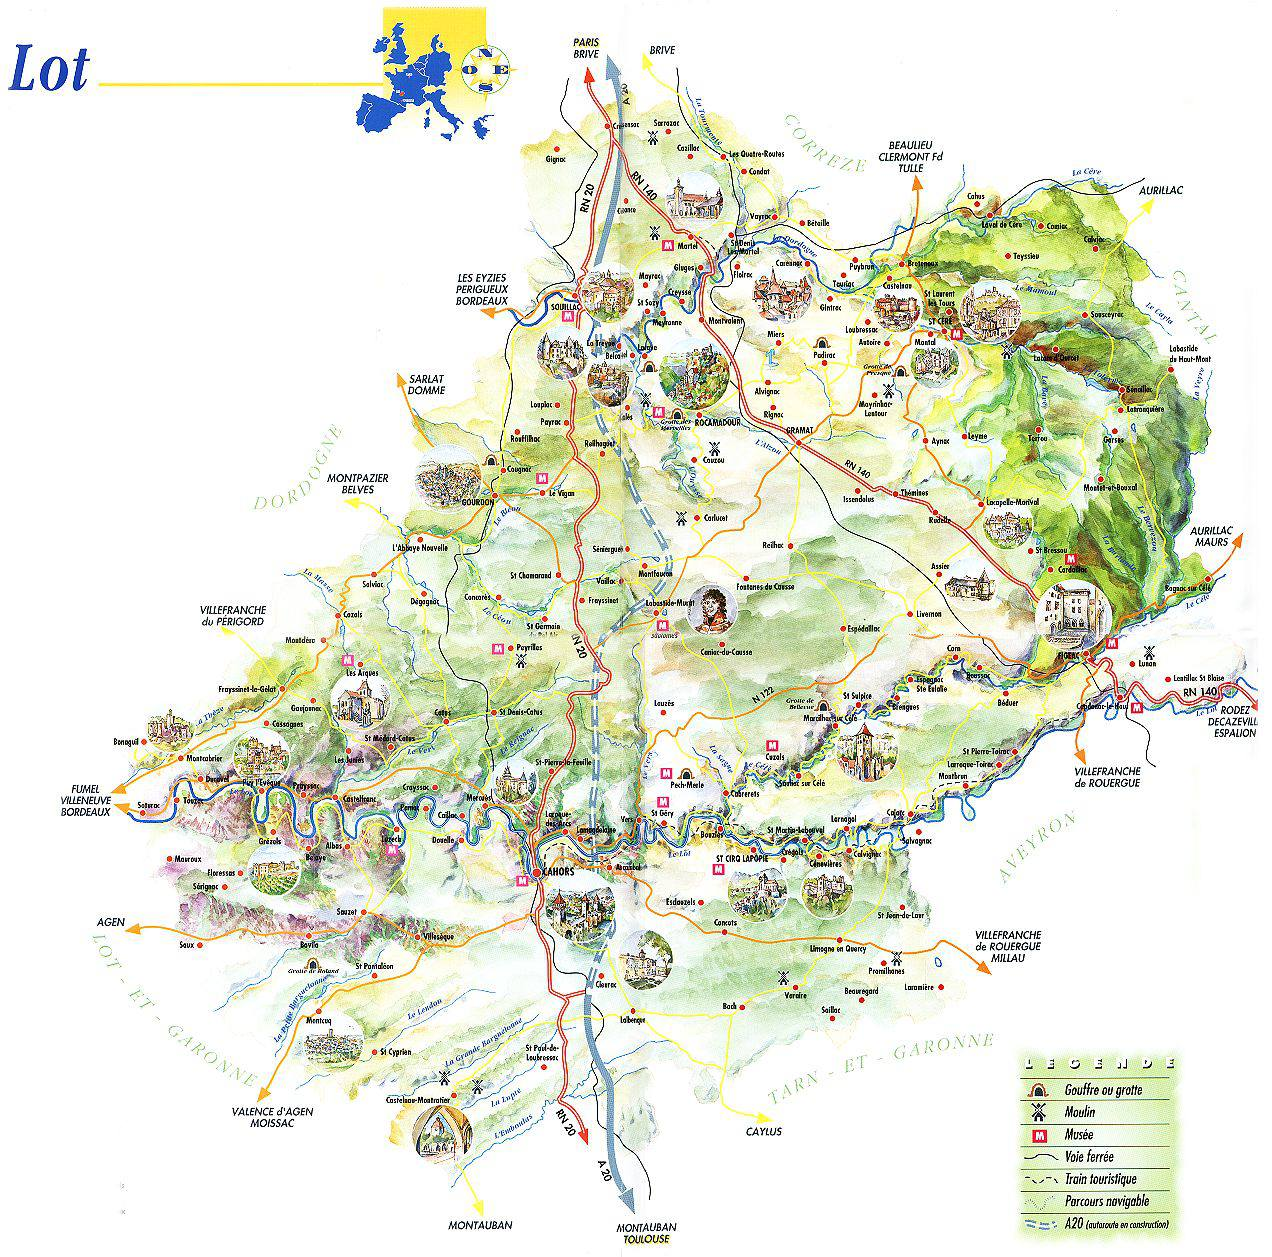 carte-lot-et-dordogne